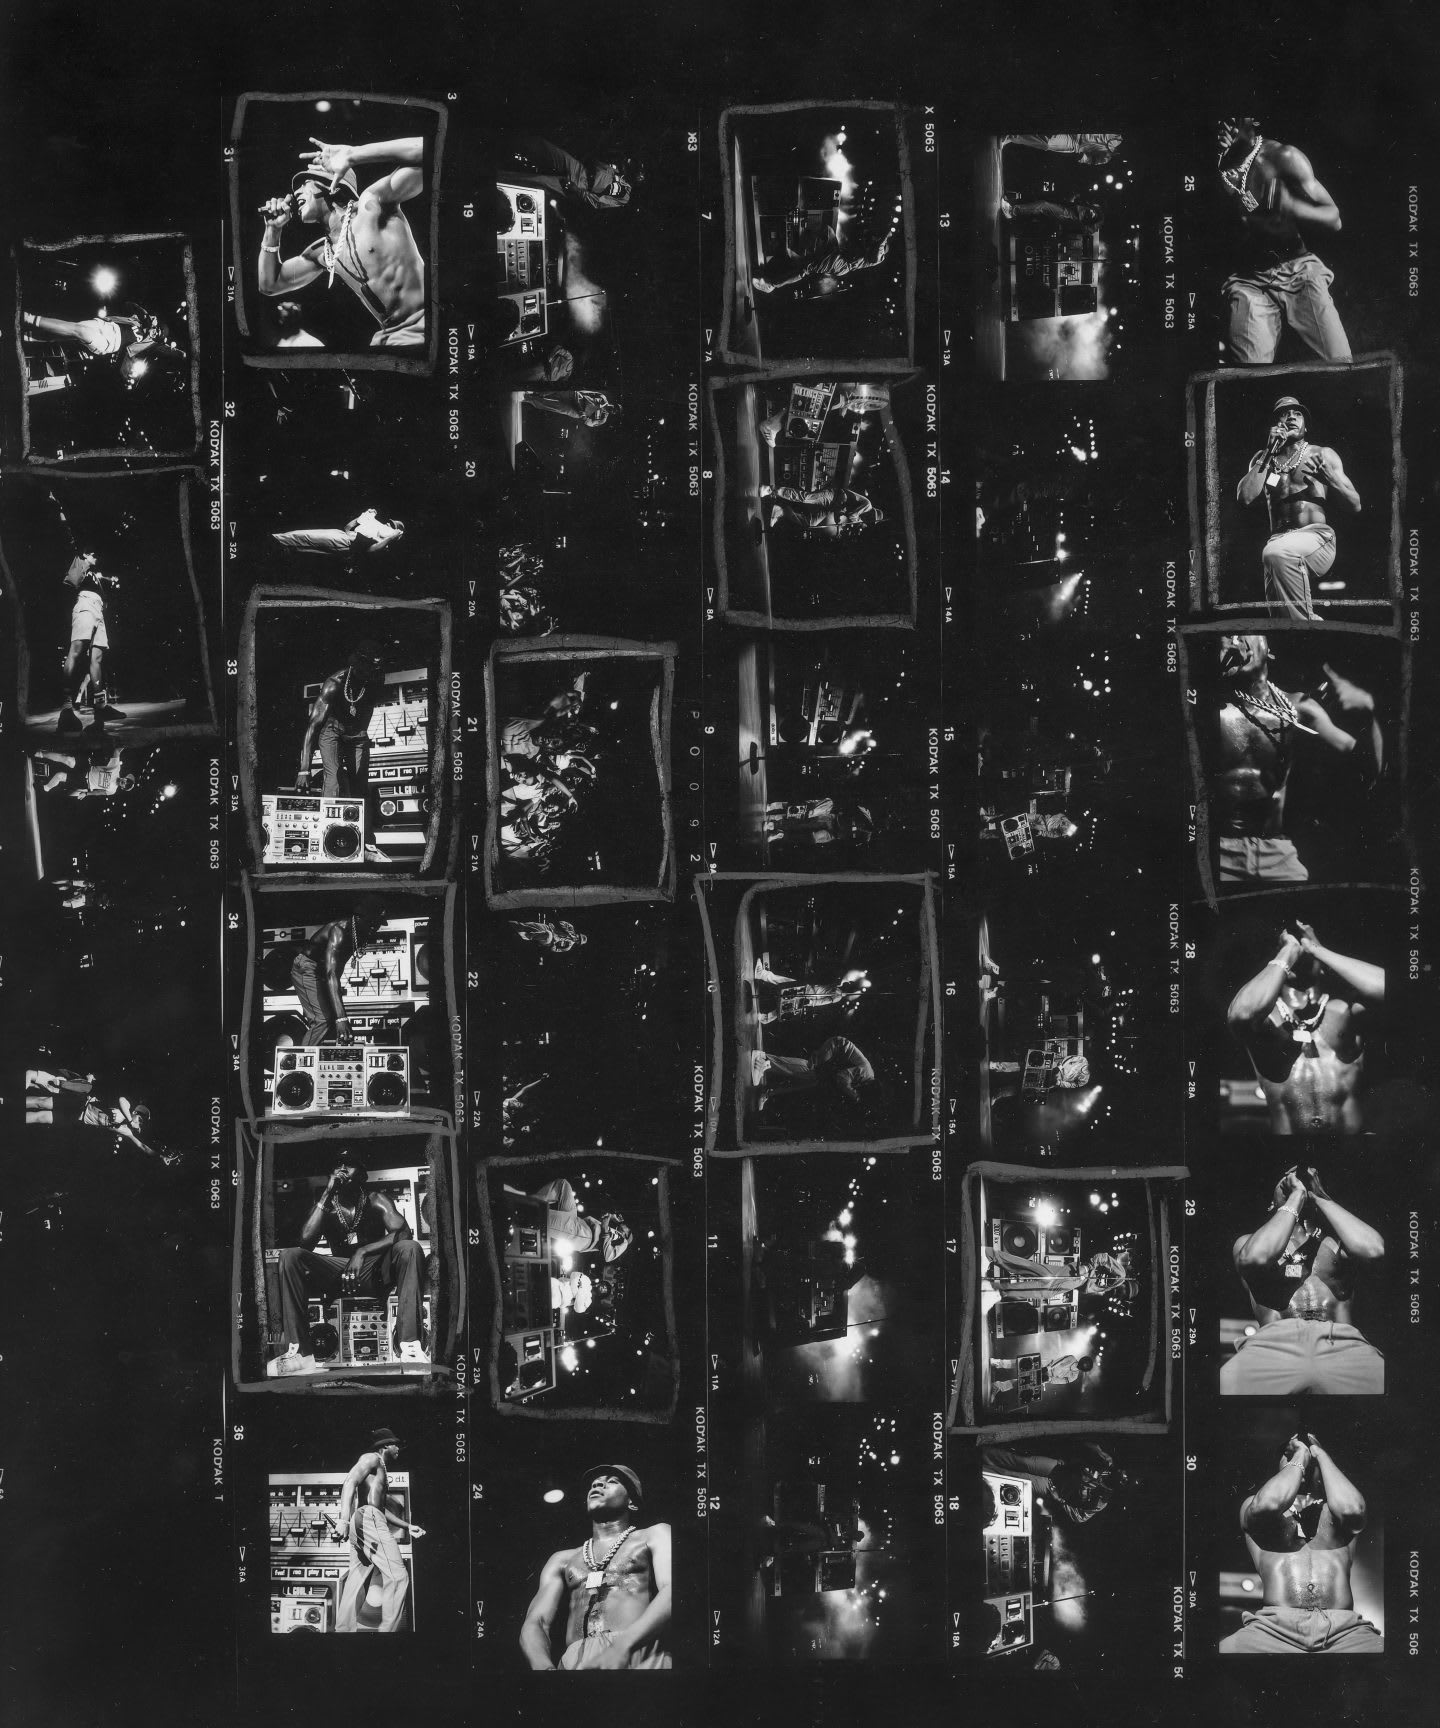 A black and white contact sheet shows images from a Run DMC concert.